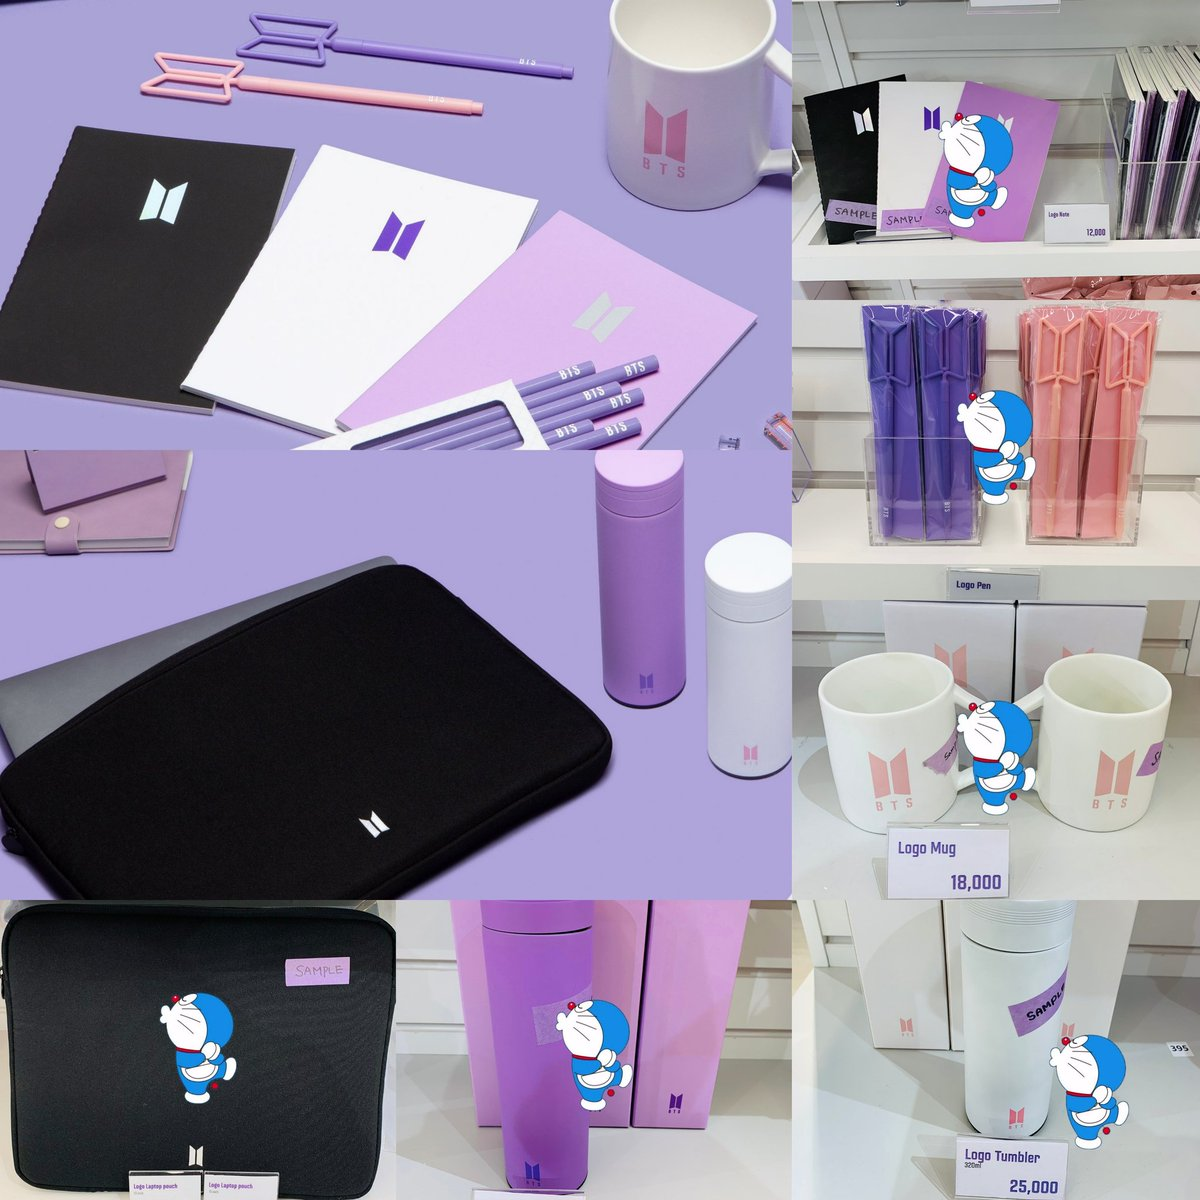 """[PREORDER] #BTS_POPUP #SPACE_OF_BTS BASIC & LOGO Theme Products. ❣  Note: 🏷 RM90 Pen: 🏷 RM70 Mug: 🏷 RM110 Laptop Pouch 15"""": 🏷 RM180 Tumbler 500ml: 🏷 RM160 Tumbler 320ml: 🏷 RM140 📦 TBA  #BTSARMY #Malaysia #PreOrder  📣  🔁 Help RT @BTStrading_MY"""